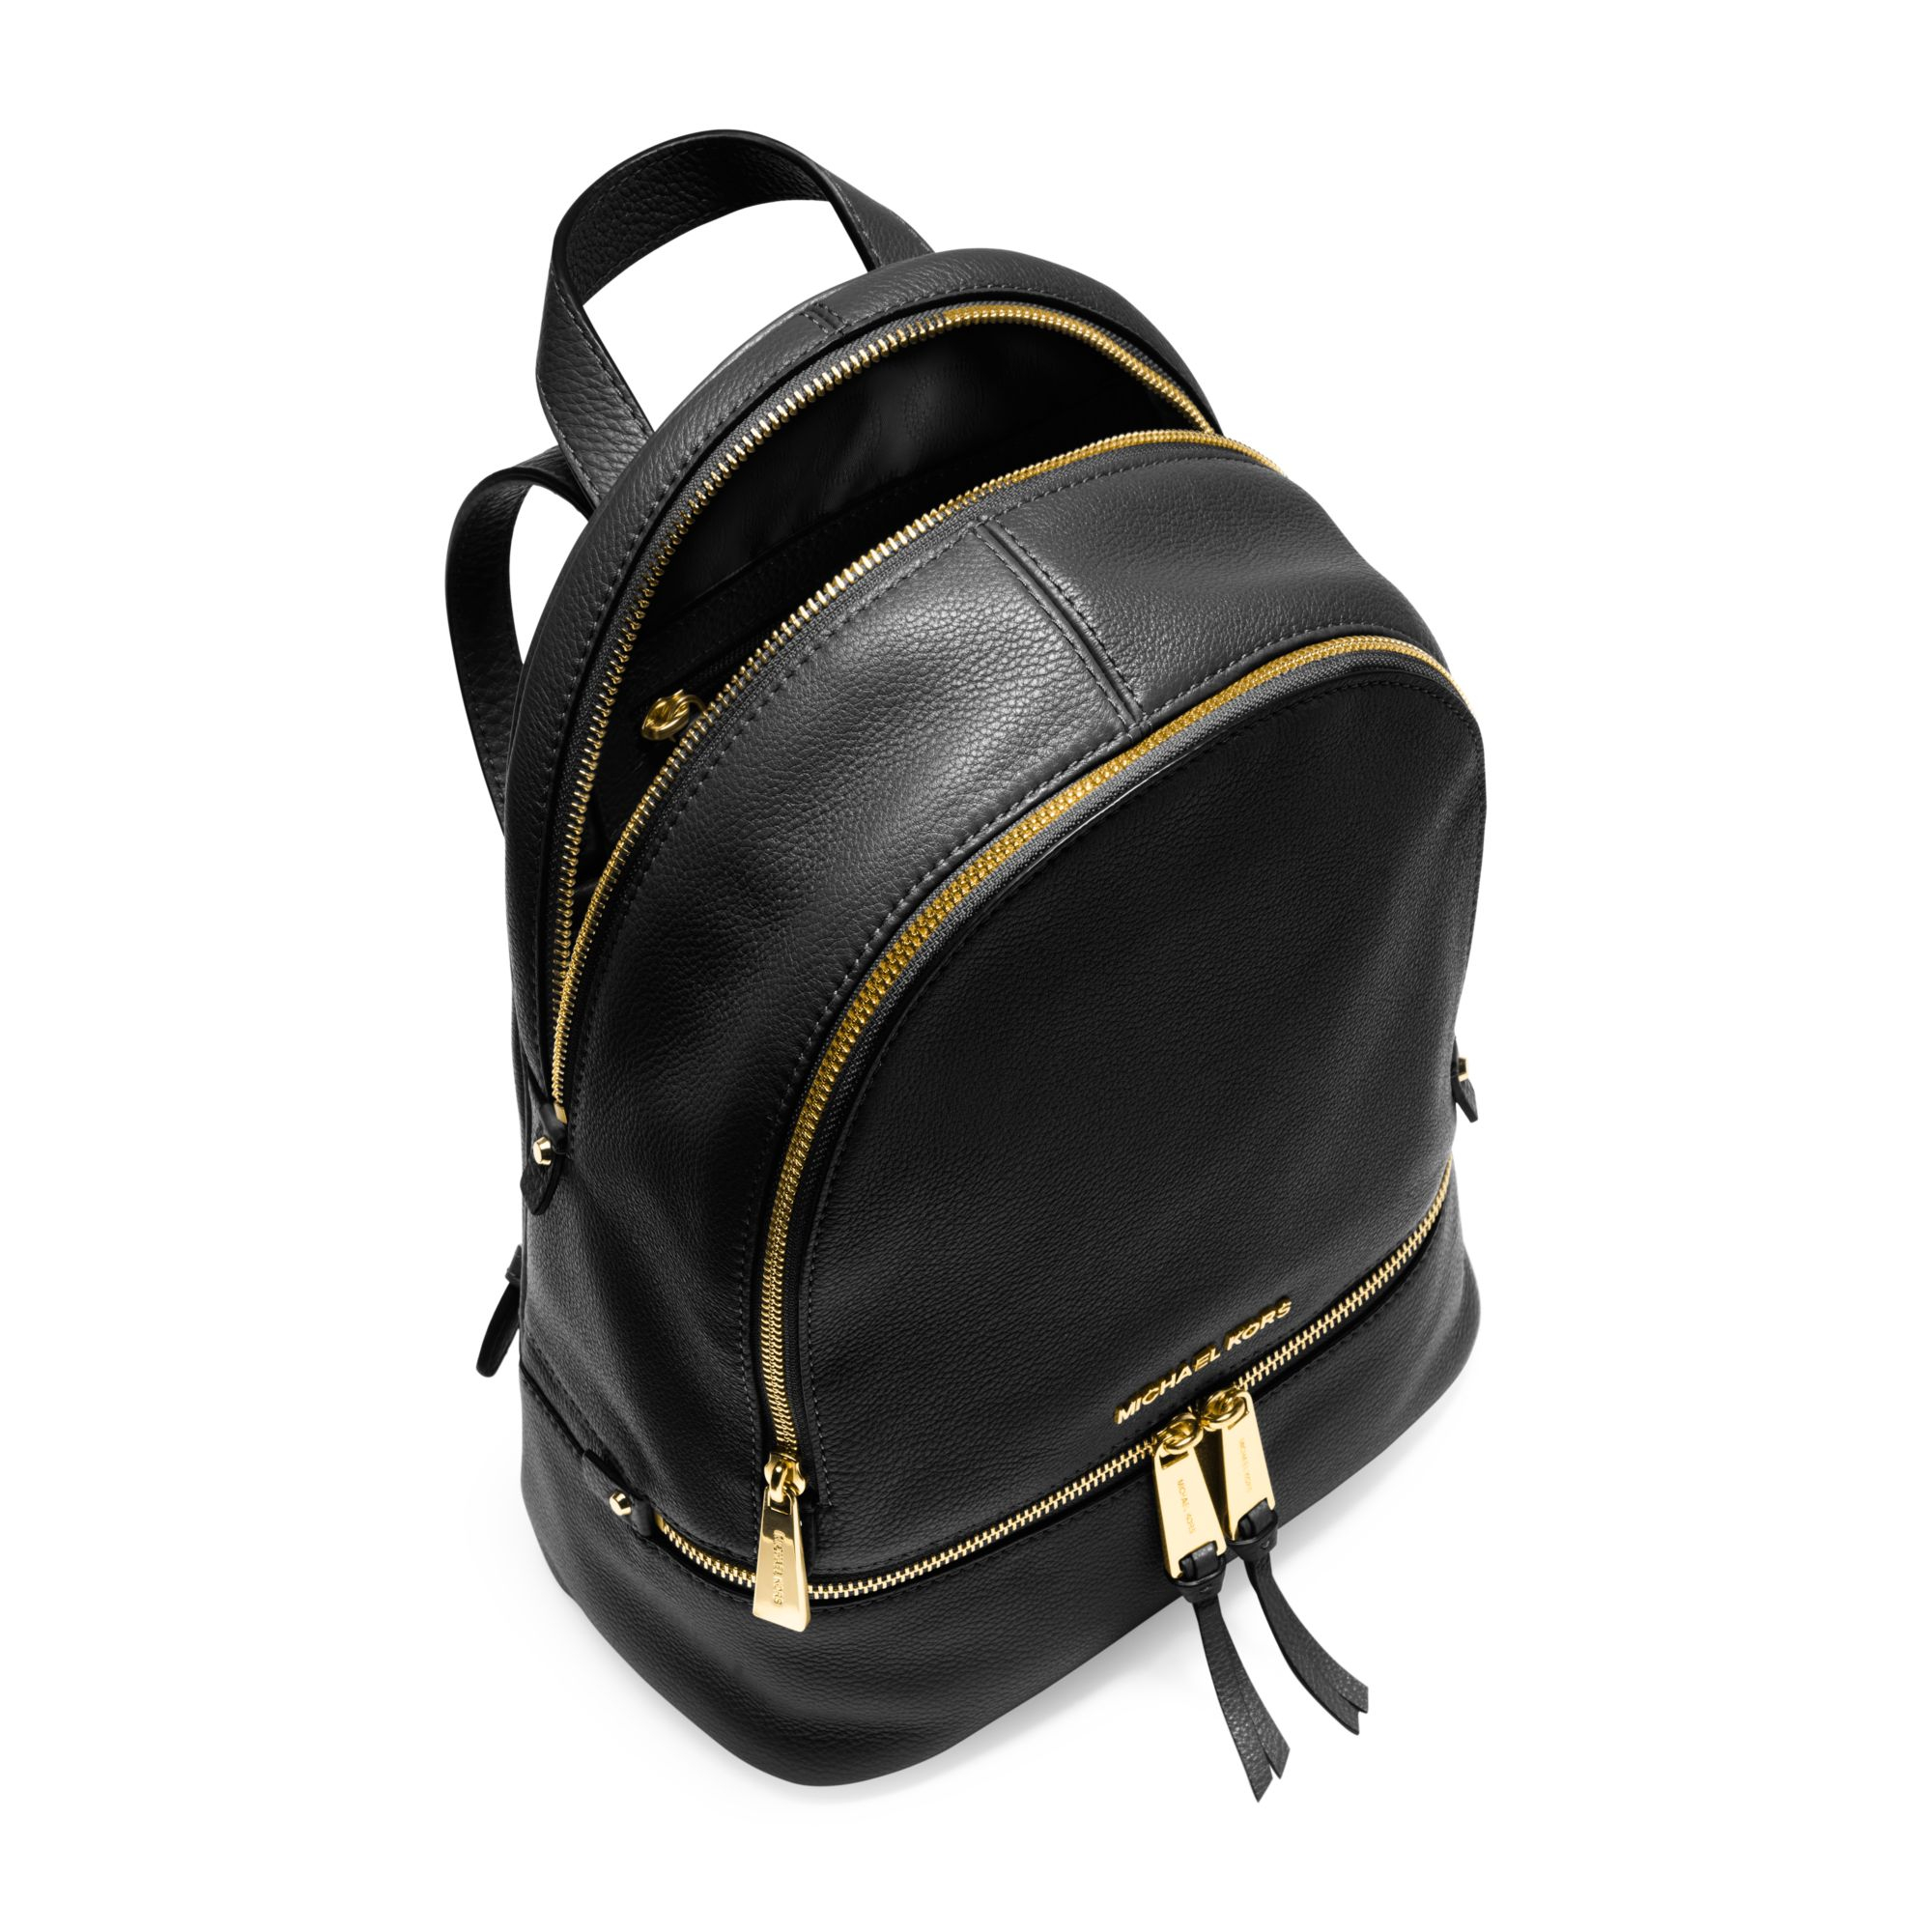 Michael kors Rhea Medium Leather Backpack in Black | Lyst